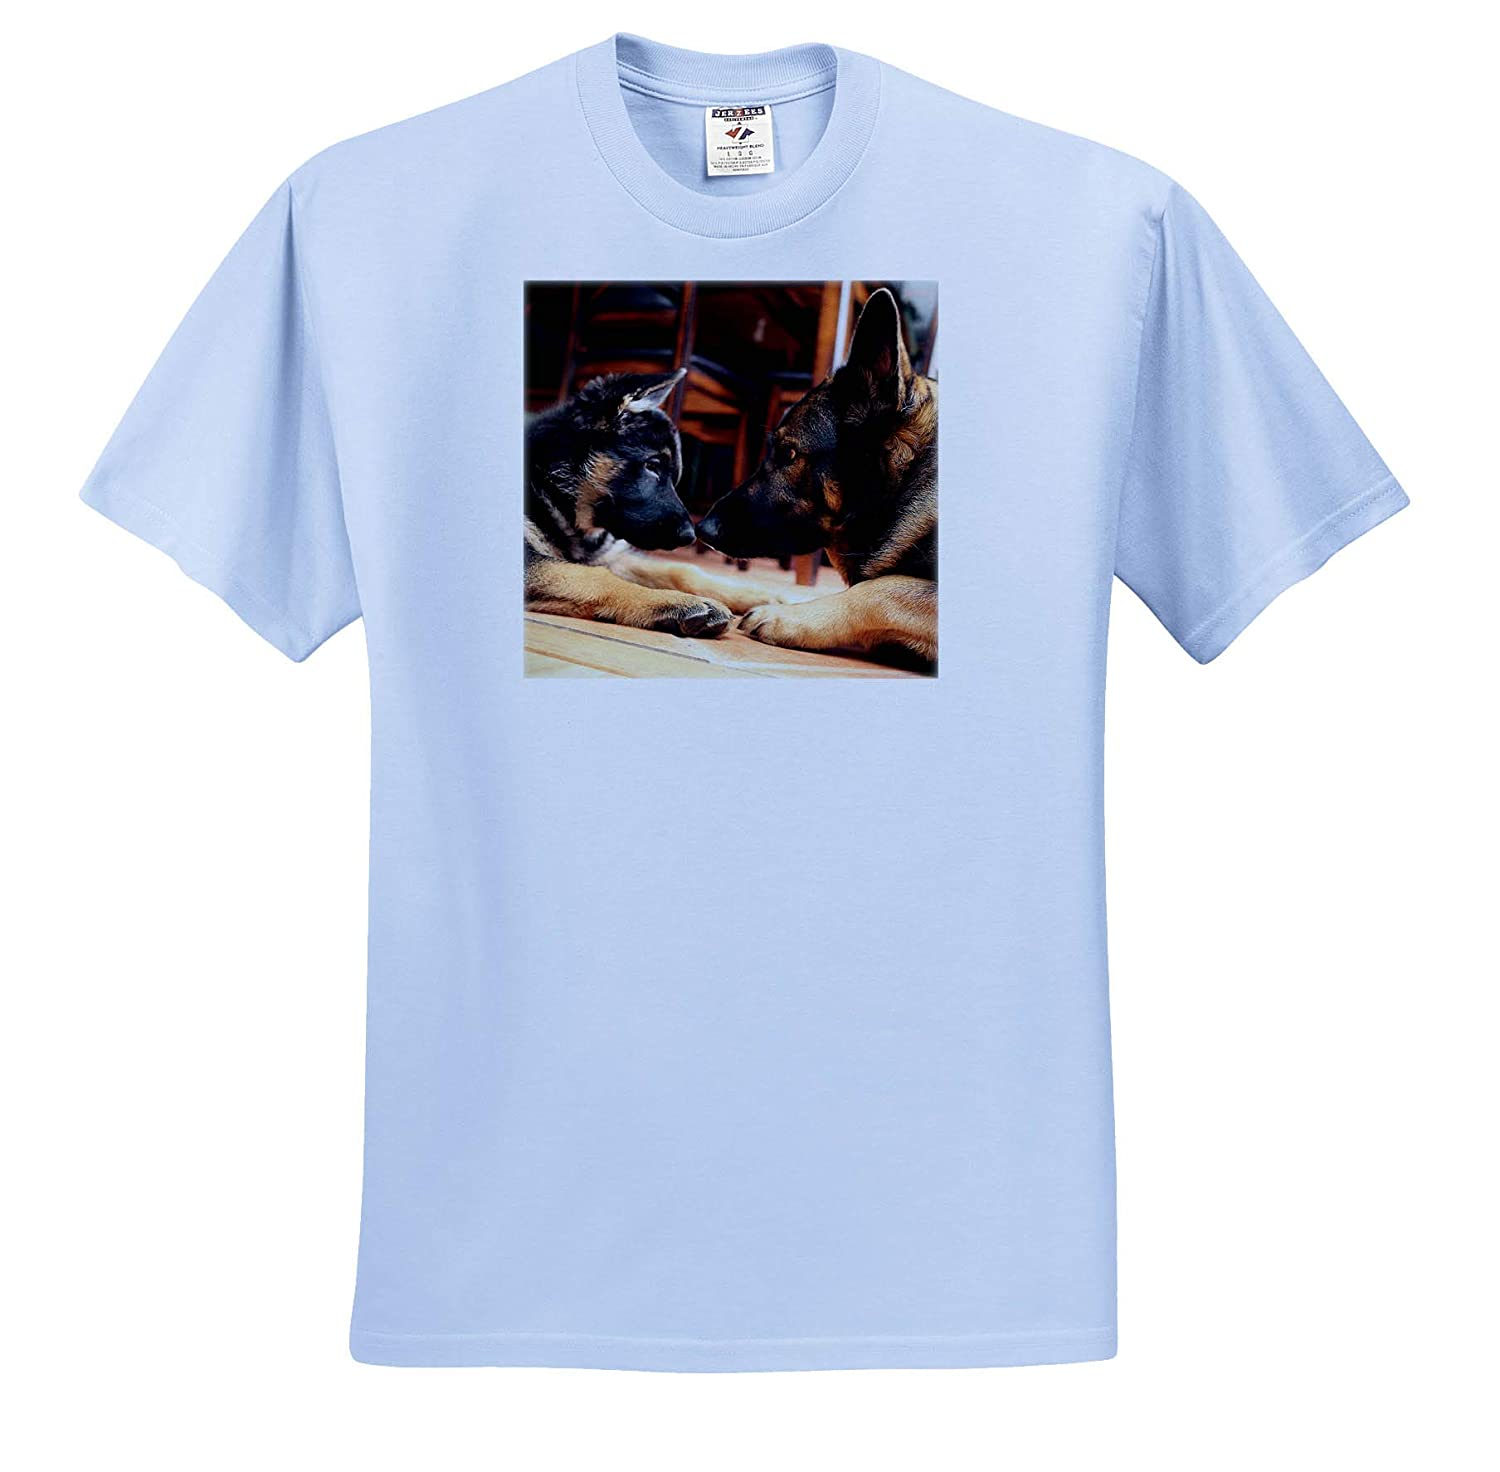 - T-Shirts Photo of Two German Shepherds Nose-to-Nose Figuring Each Other Out 3dRose Stamp City Animals